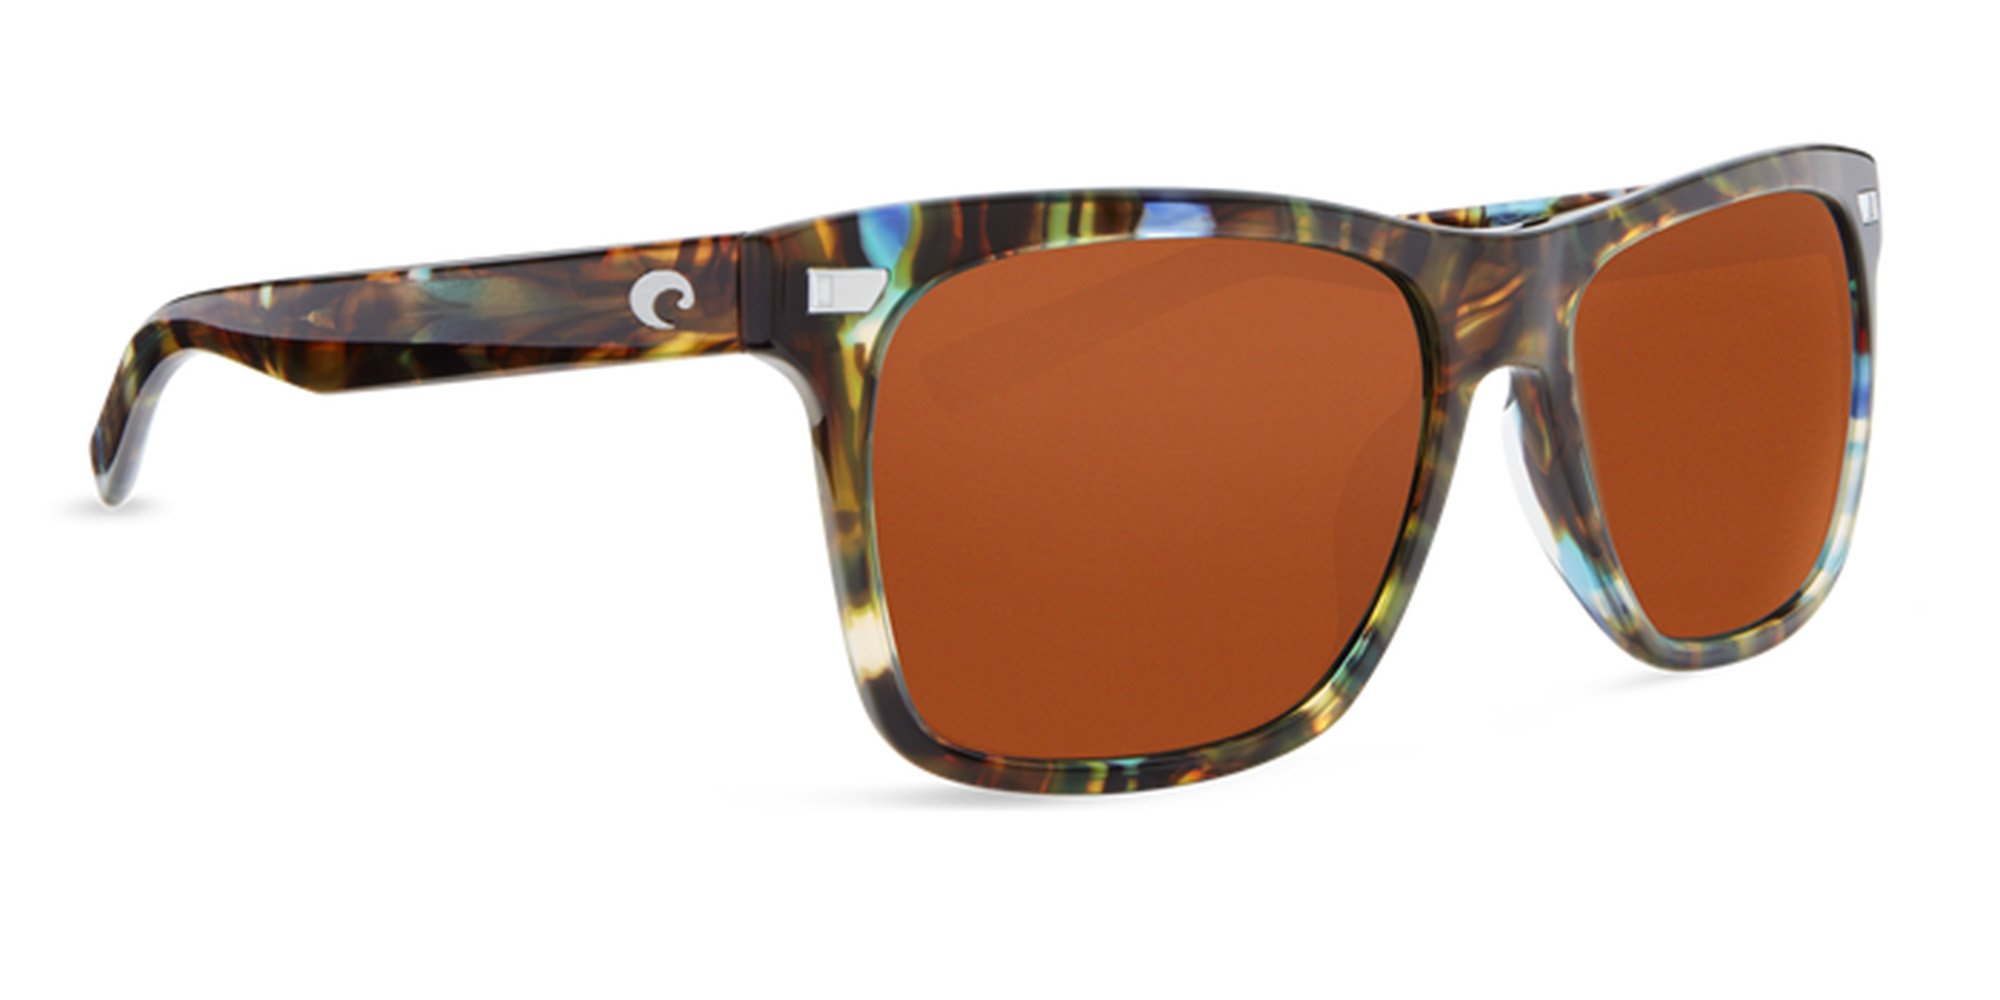 Costa Aransas Sunglasses